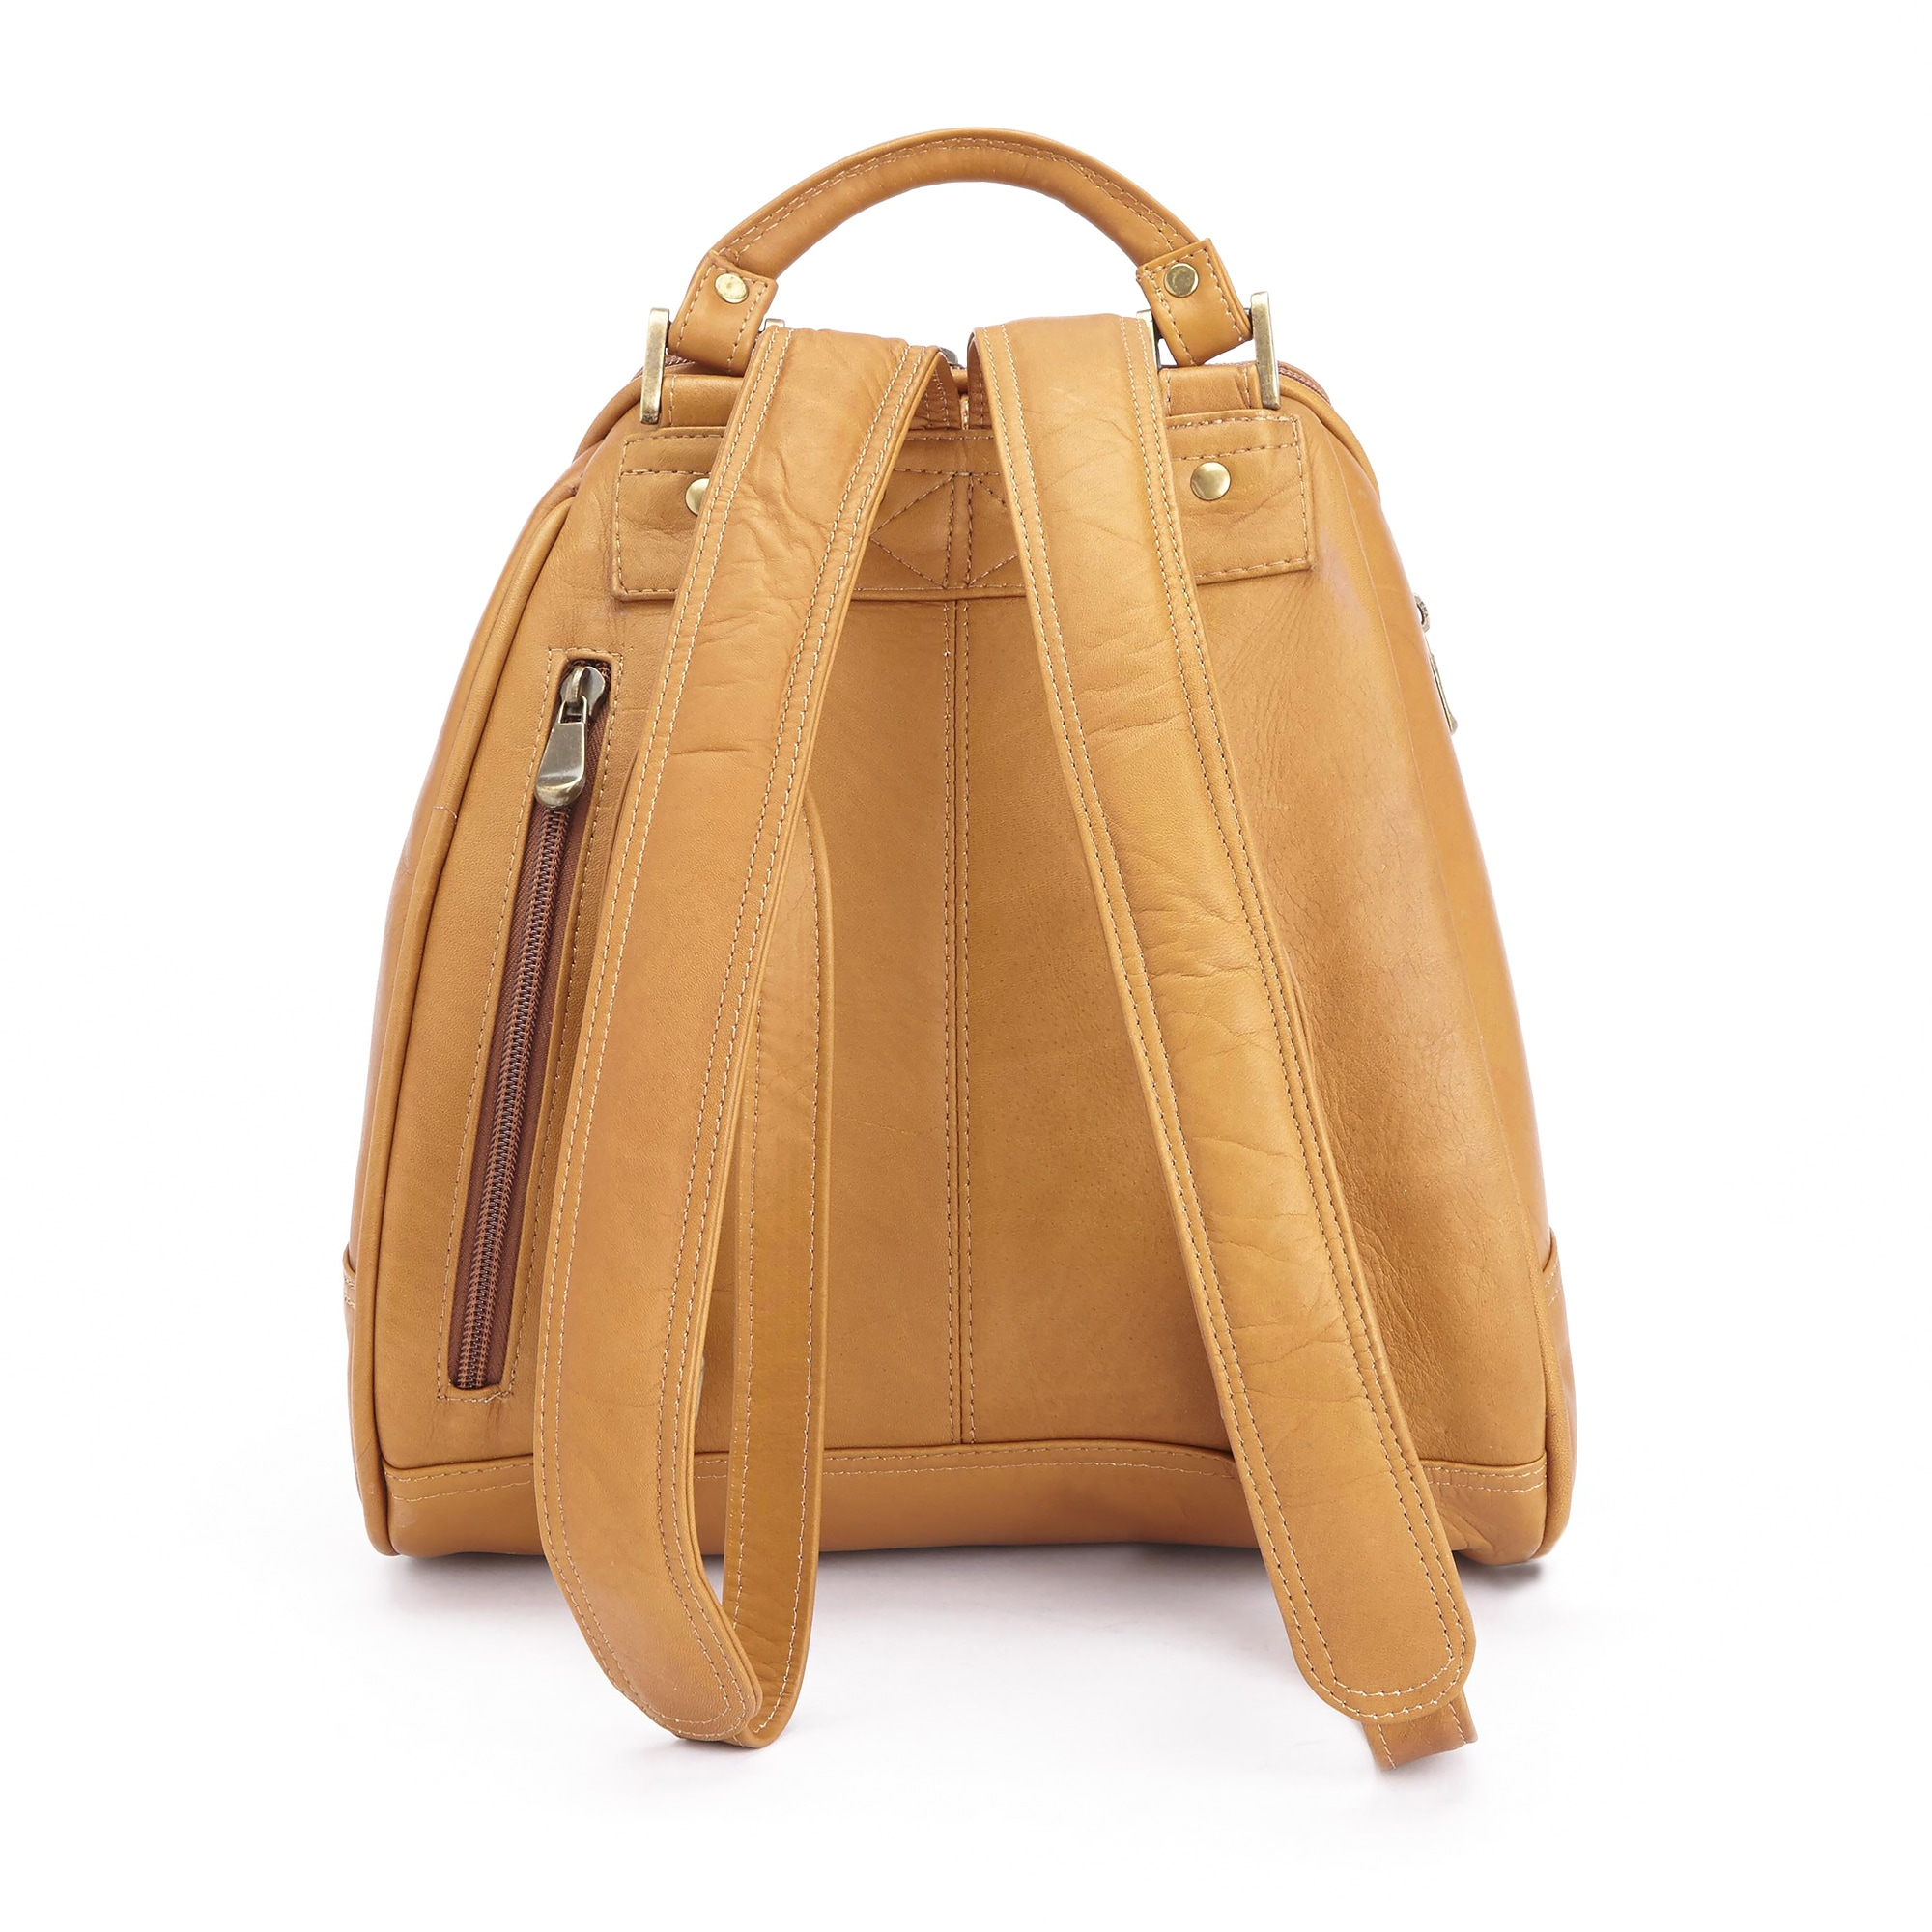 dc91bc2040 Shop Royce Leather Handcrafted Colombian Leather Luxury Sling Backpack - On  Sale - Free Shipping Today - Overstock - 10658048